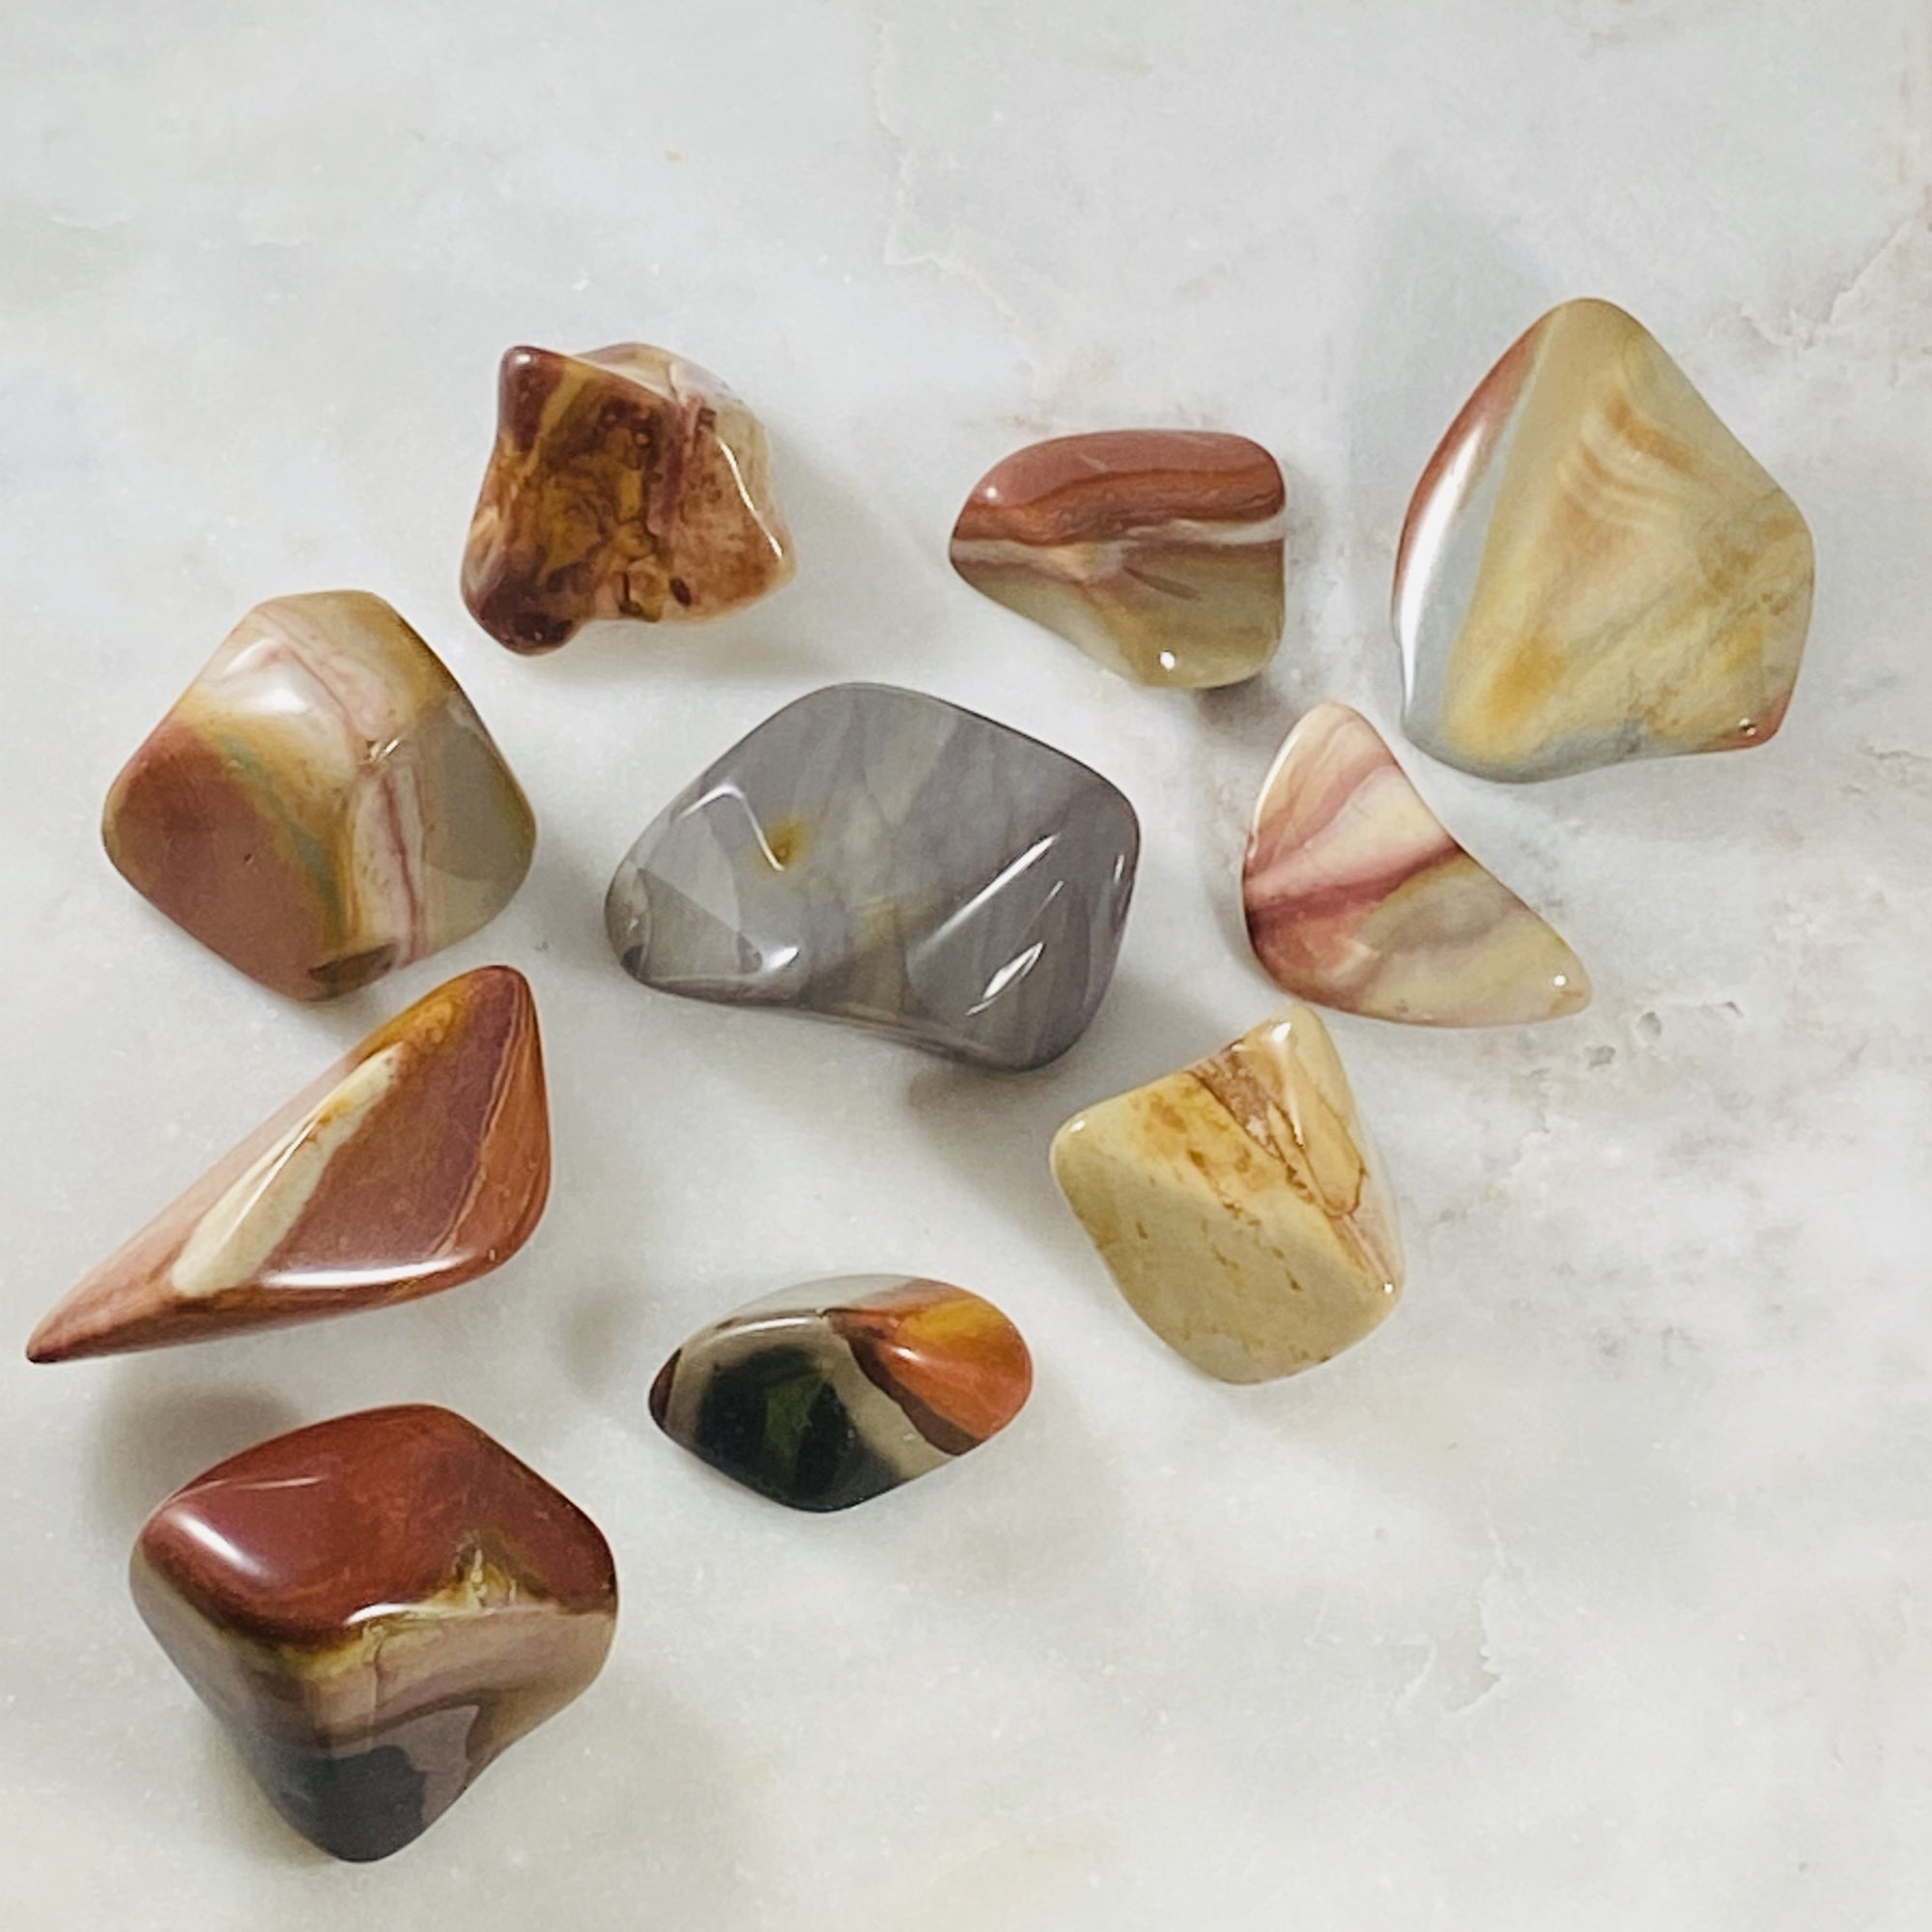 Polychrome jasper for nurturing the spirit